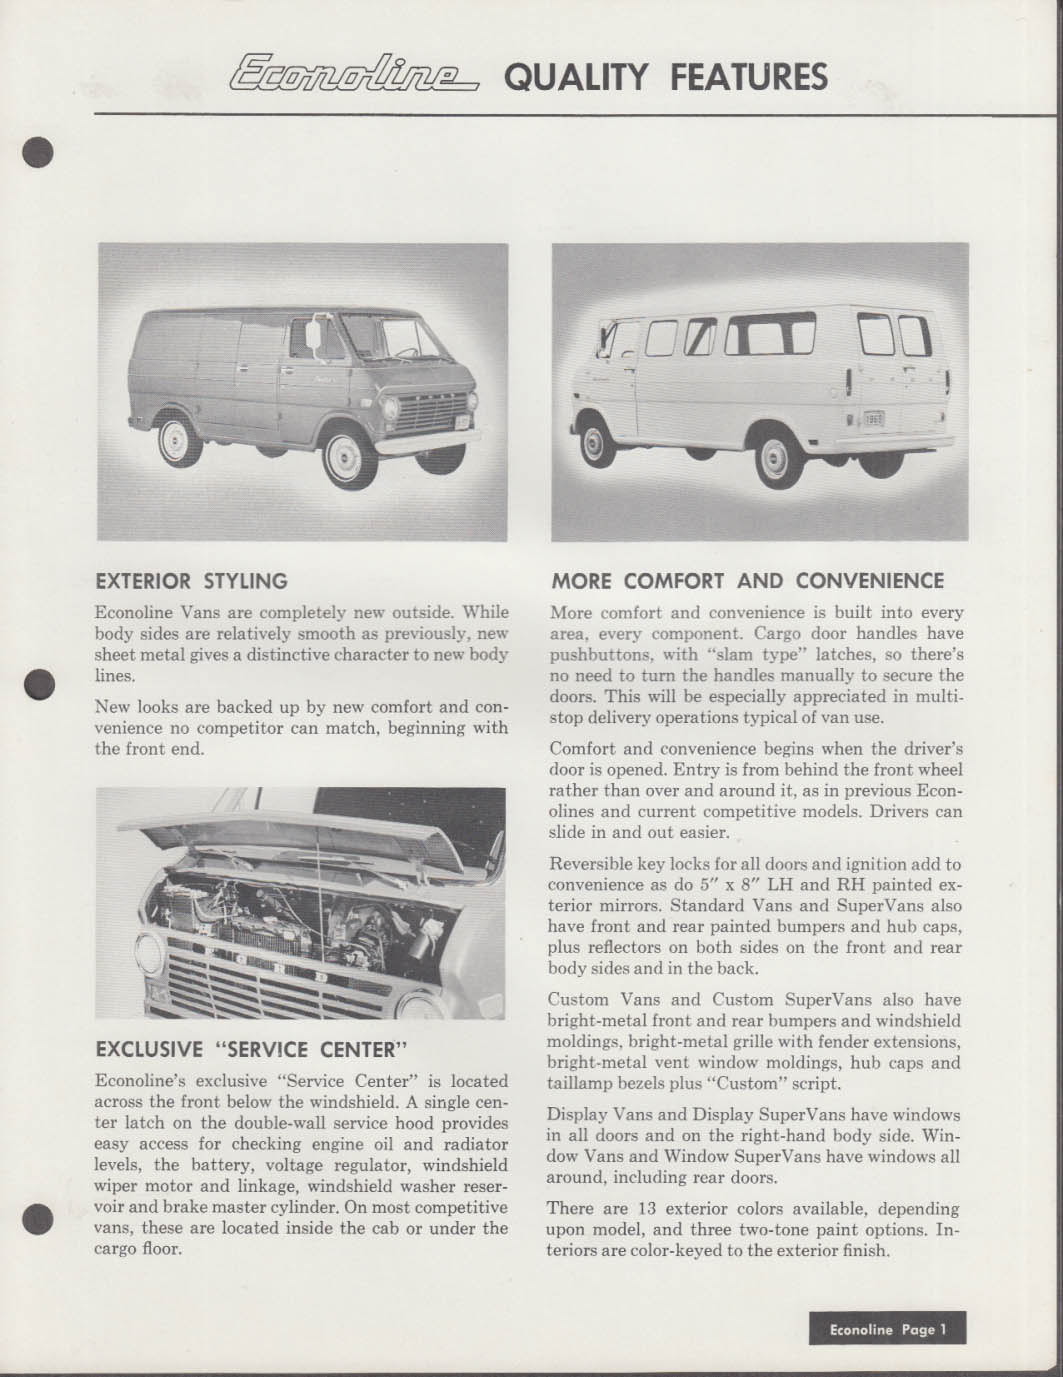 1969 Ford Econoline Van 3-ring binder specifications pages insert